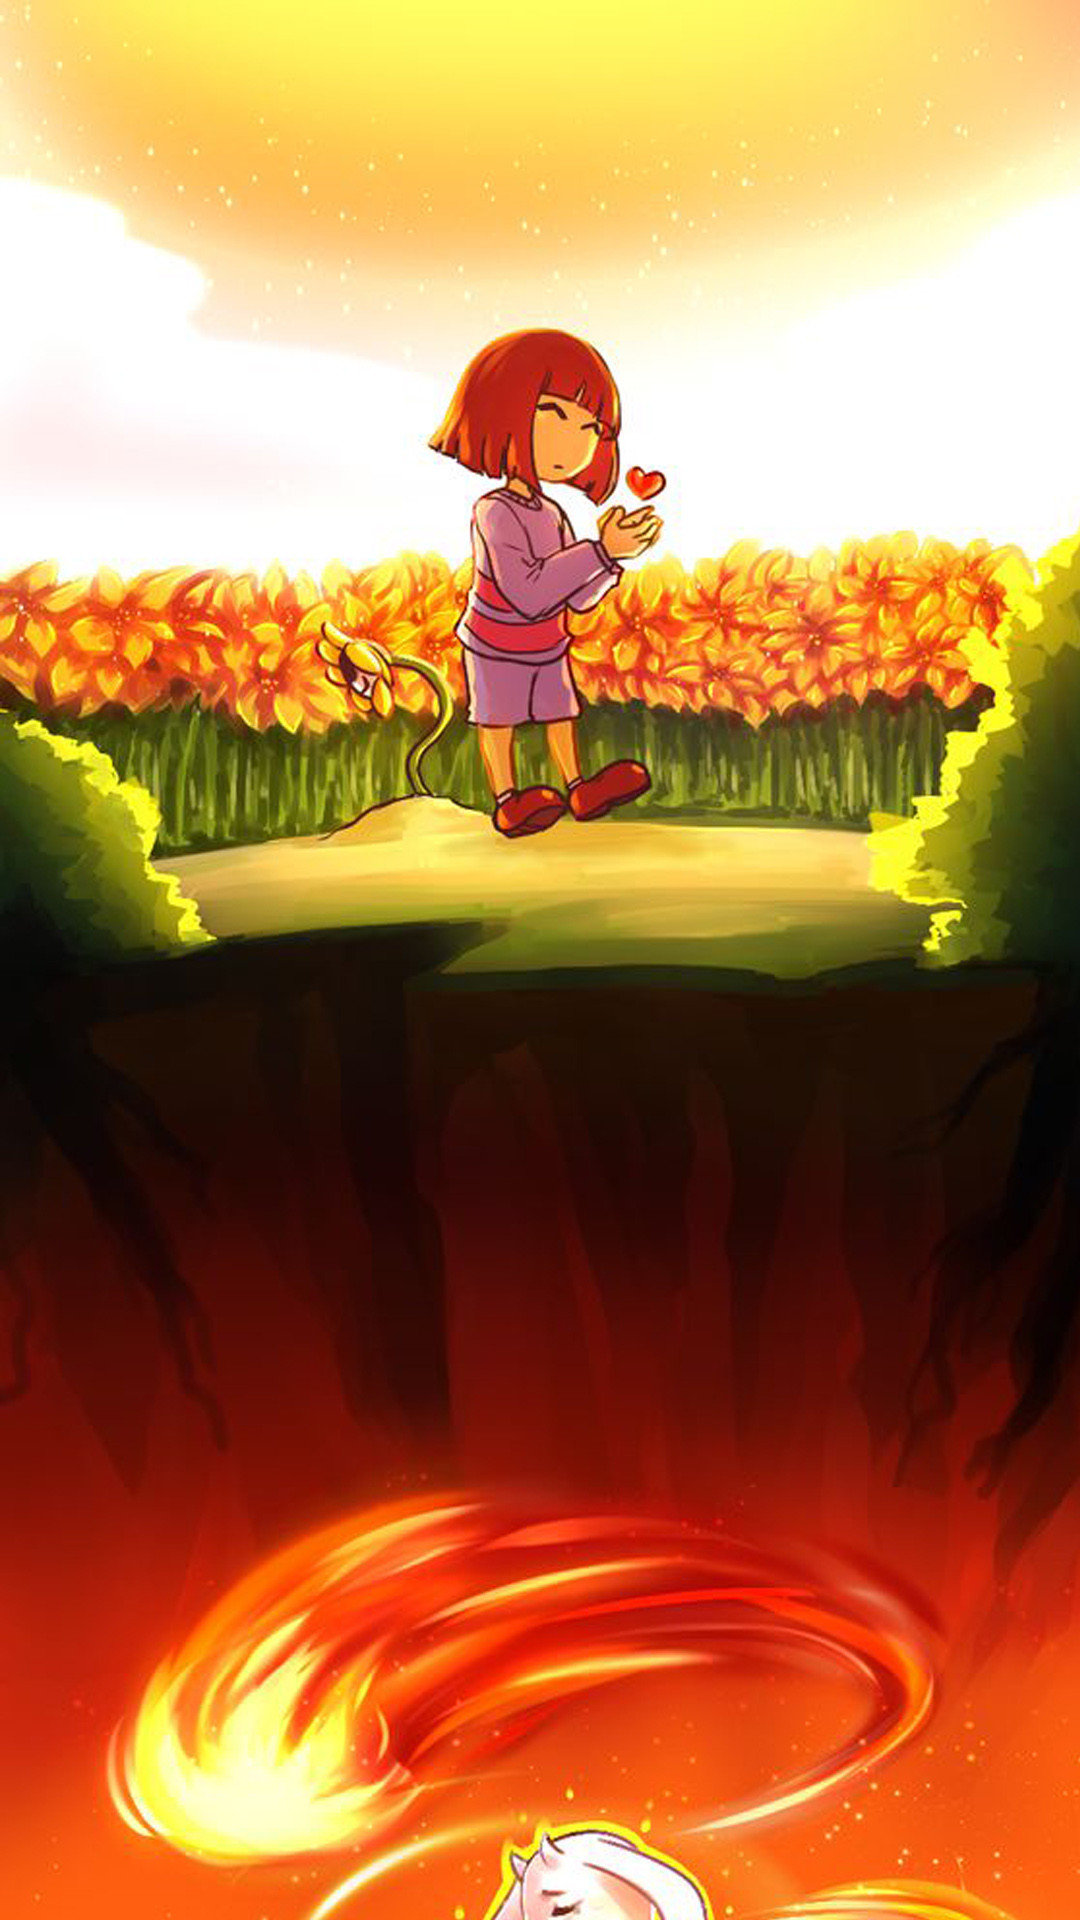 1080x1920 undertale iphone wallpaper #765403